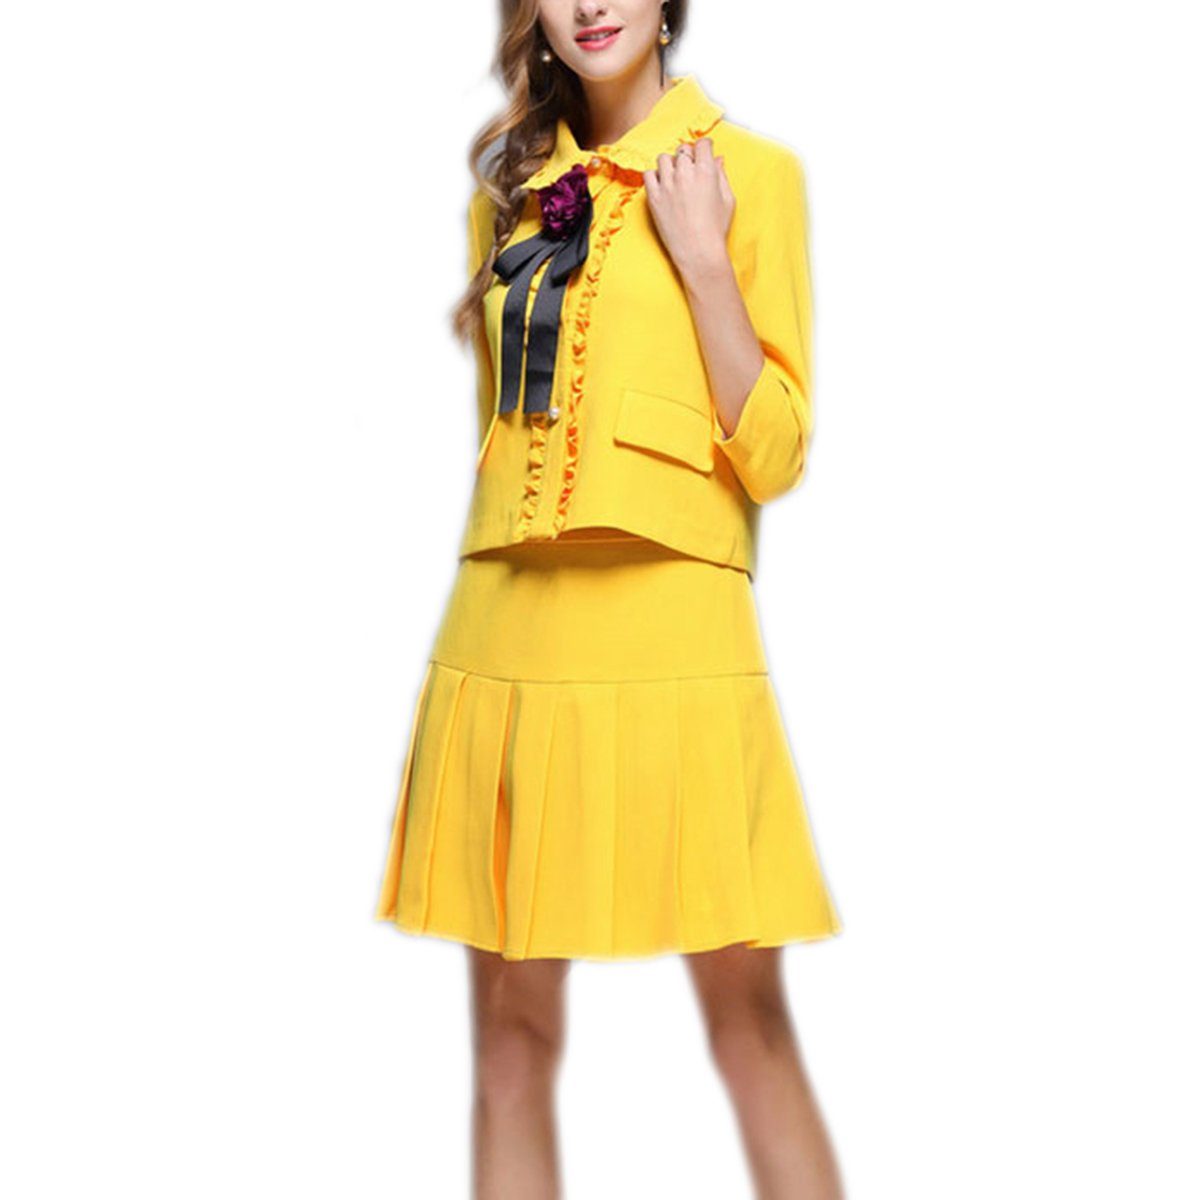 Weing Women's Sets Rose Appliques Short Jacket + Yellow Skirt Suit Gold XL